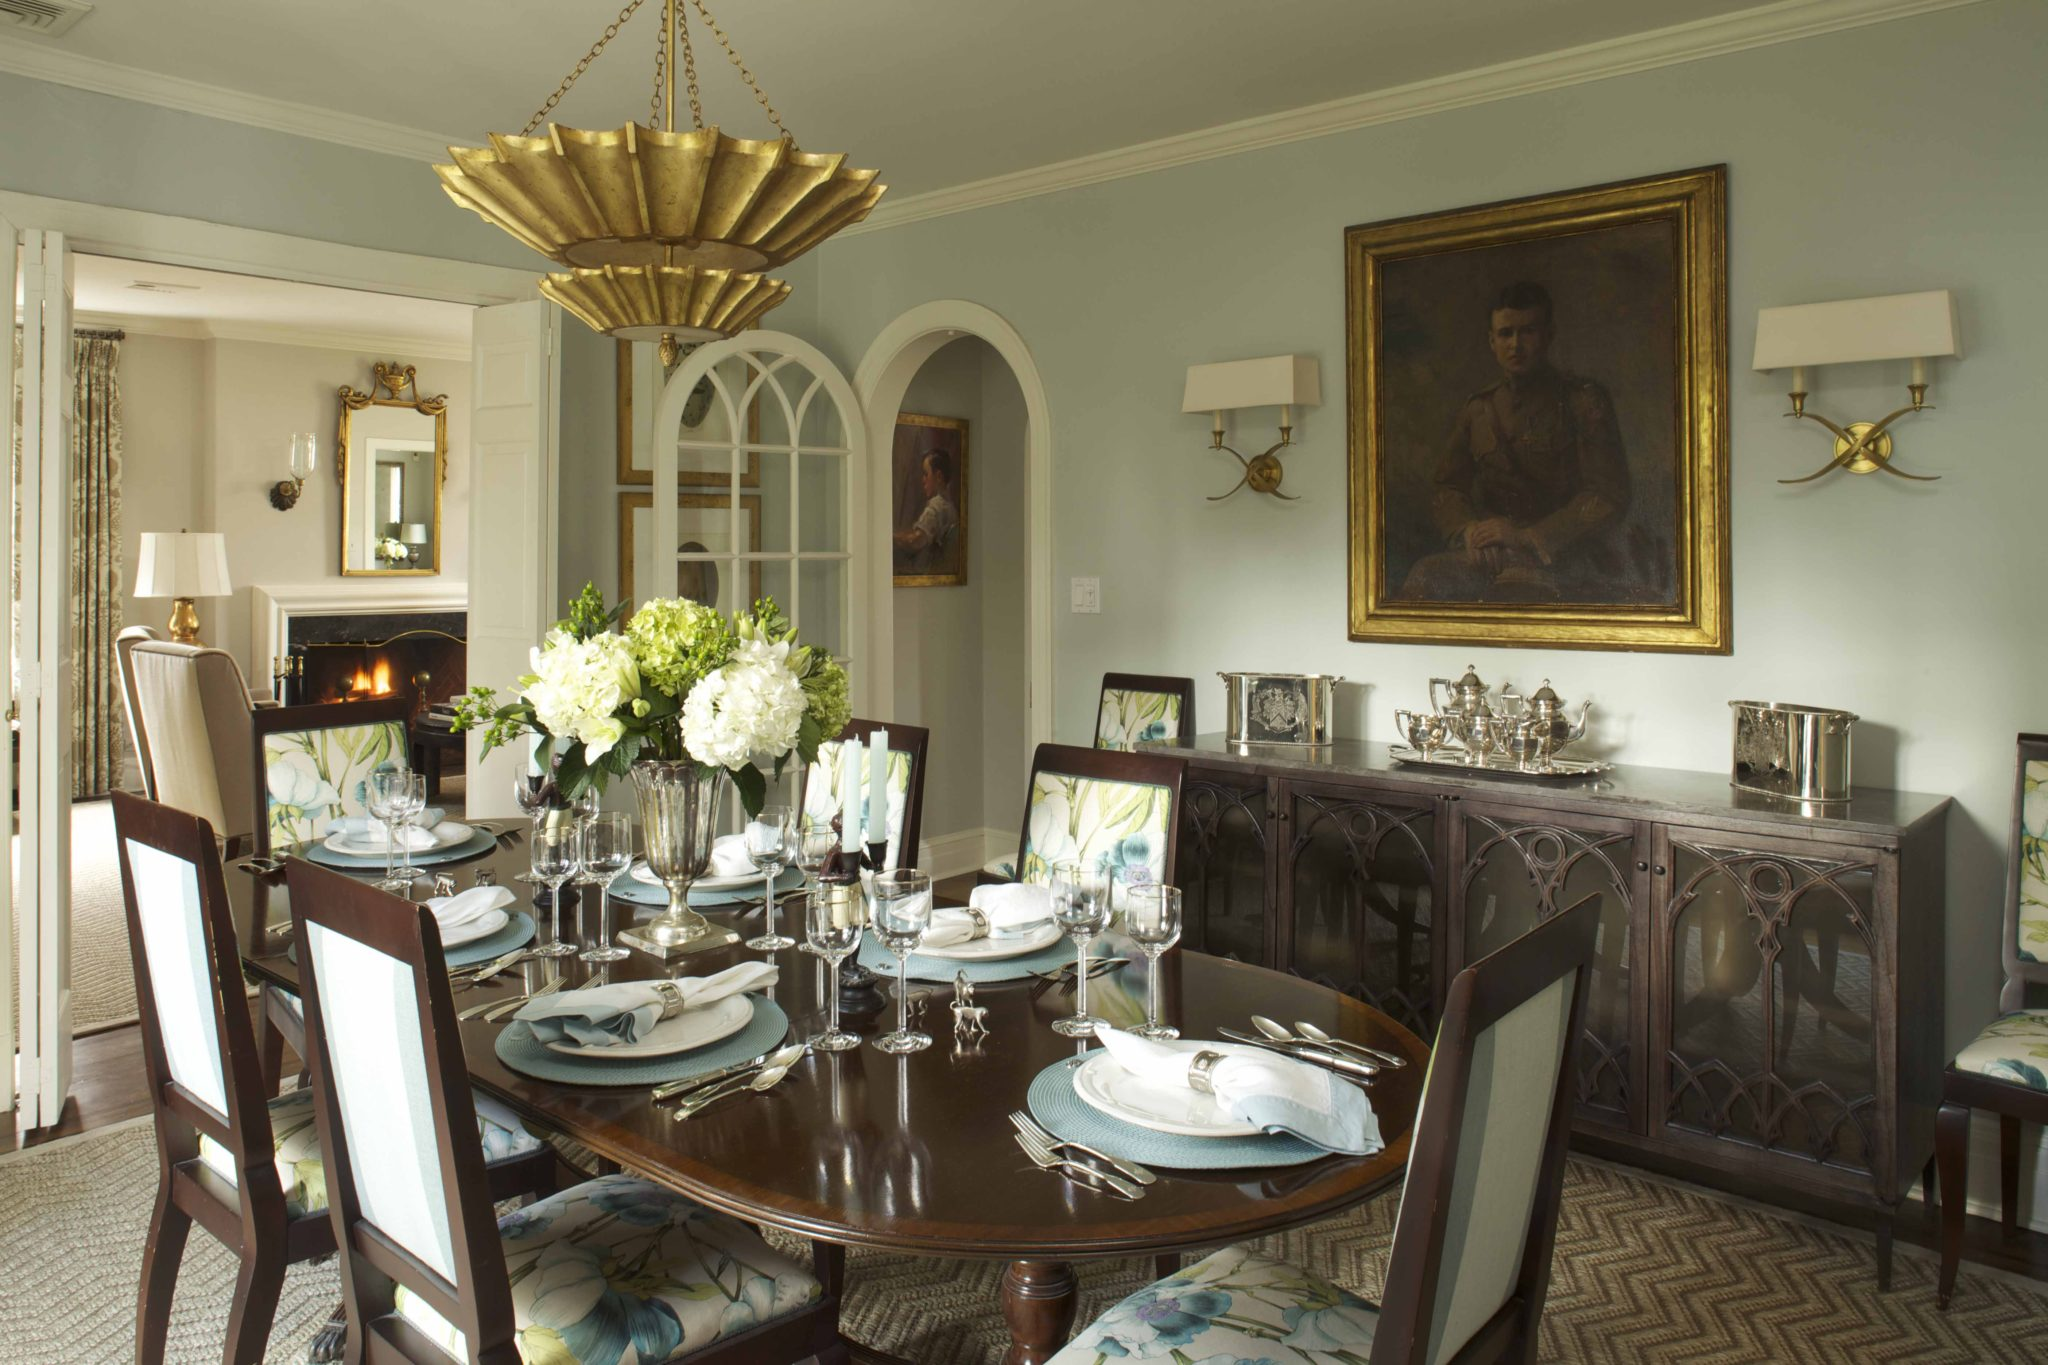 An elegant dining area, featuring an original arched French door by Ken Gemes Interiors